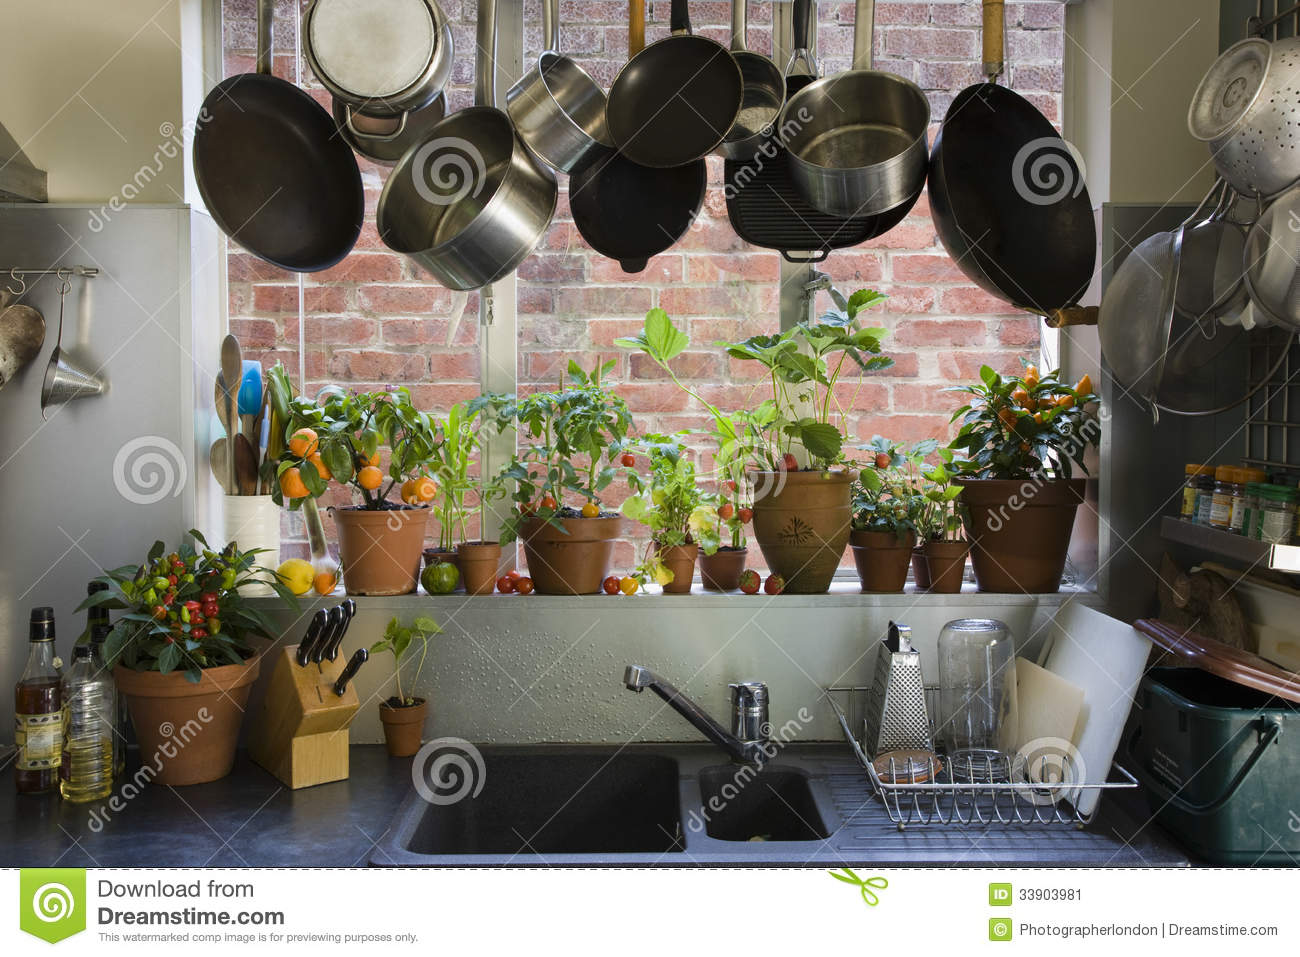 Kitchen window for plants - Royalty Free Stock Photo